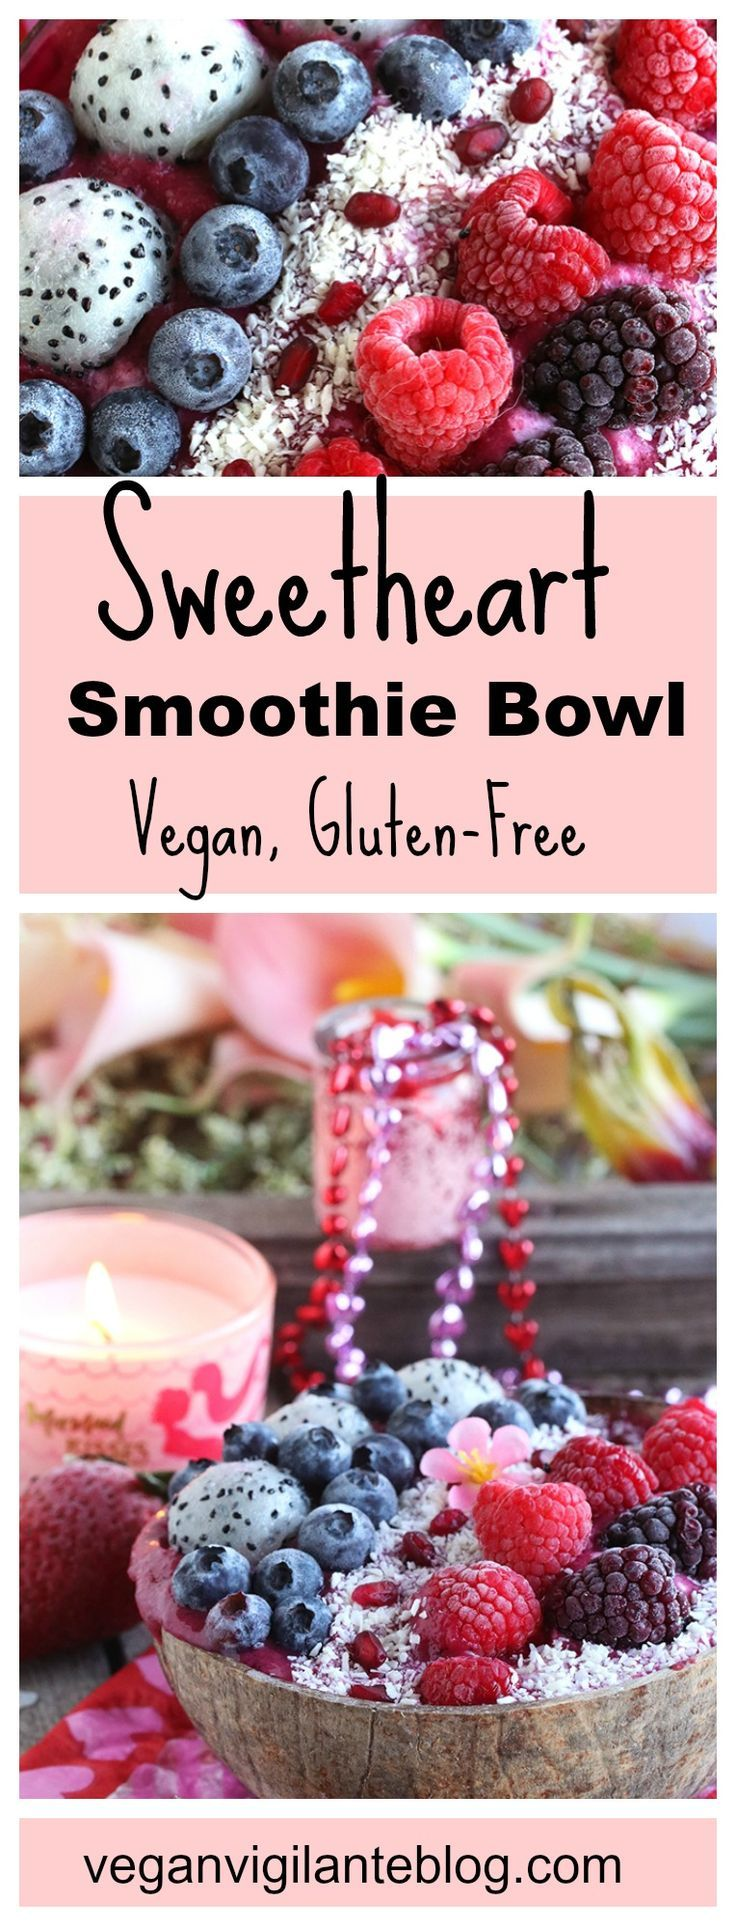 Need a little romance in your Valentine's Day? Start by serving this #Vegan Sweetheart Smoothie Bowl. Loaded with berries that are rich in antioxidants, this smoothie bowl will set the mood for a romantic and amorous day. Also #glutenfree & #refinedsugarfree.